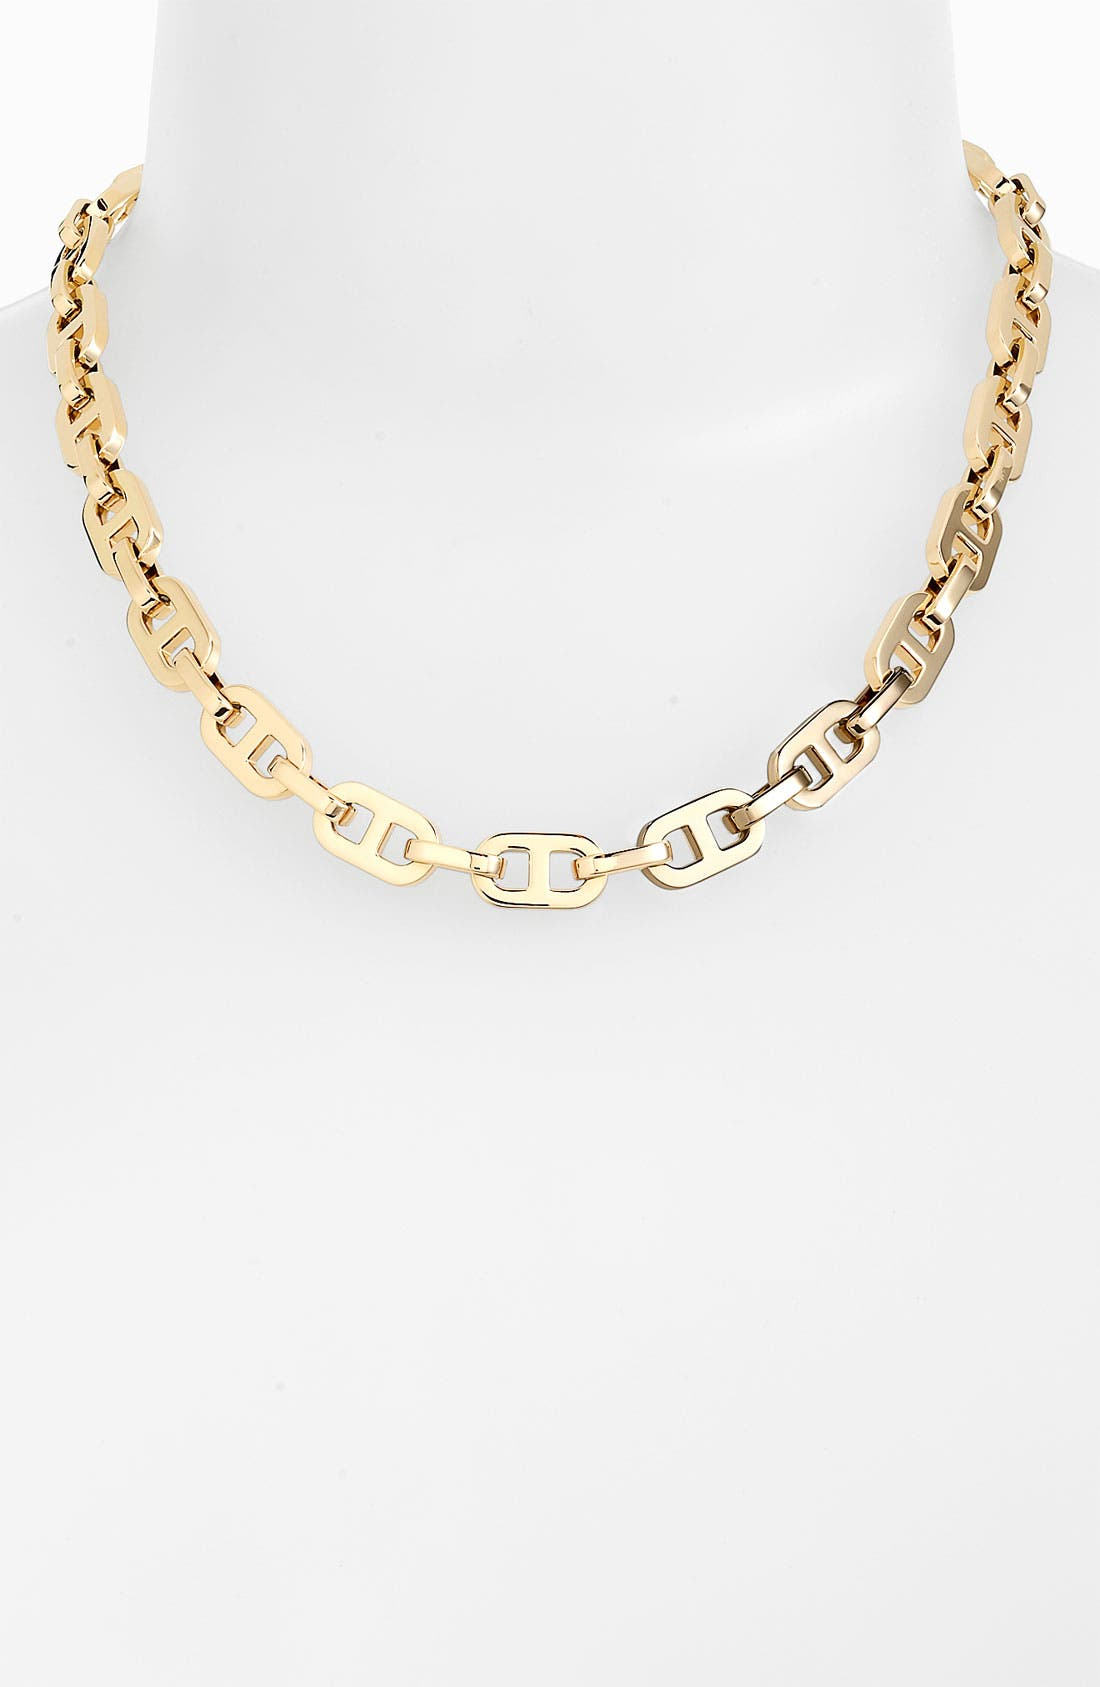 Main Image - Michael Kors 'Equestrian Luxury' Link Necklace